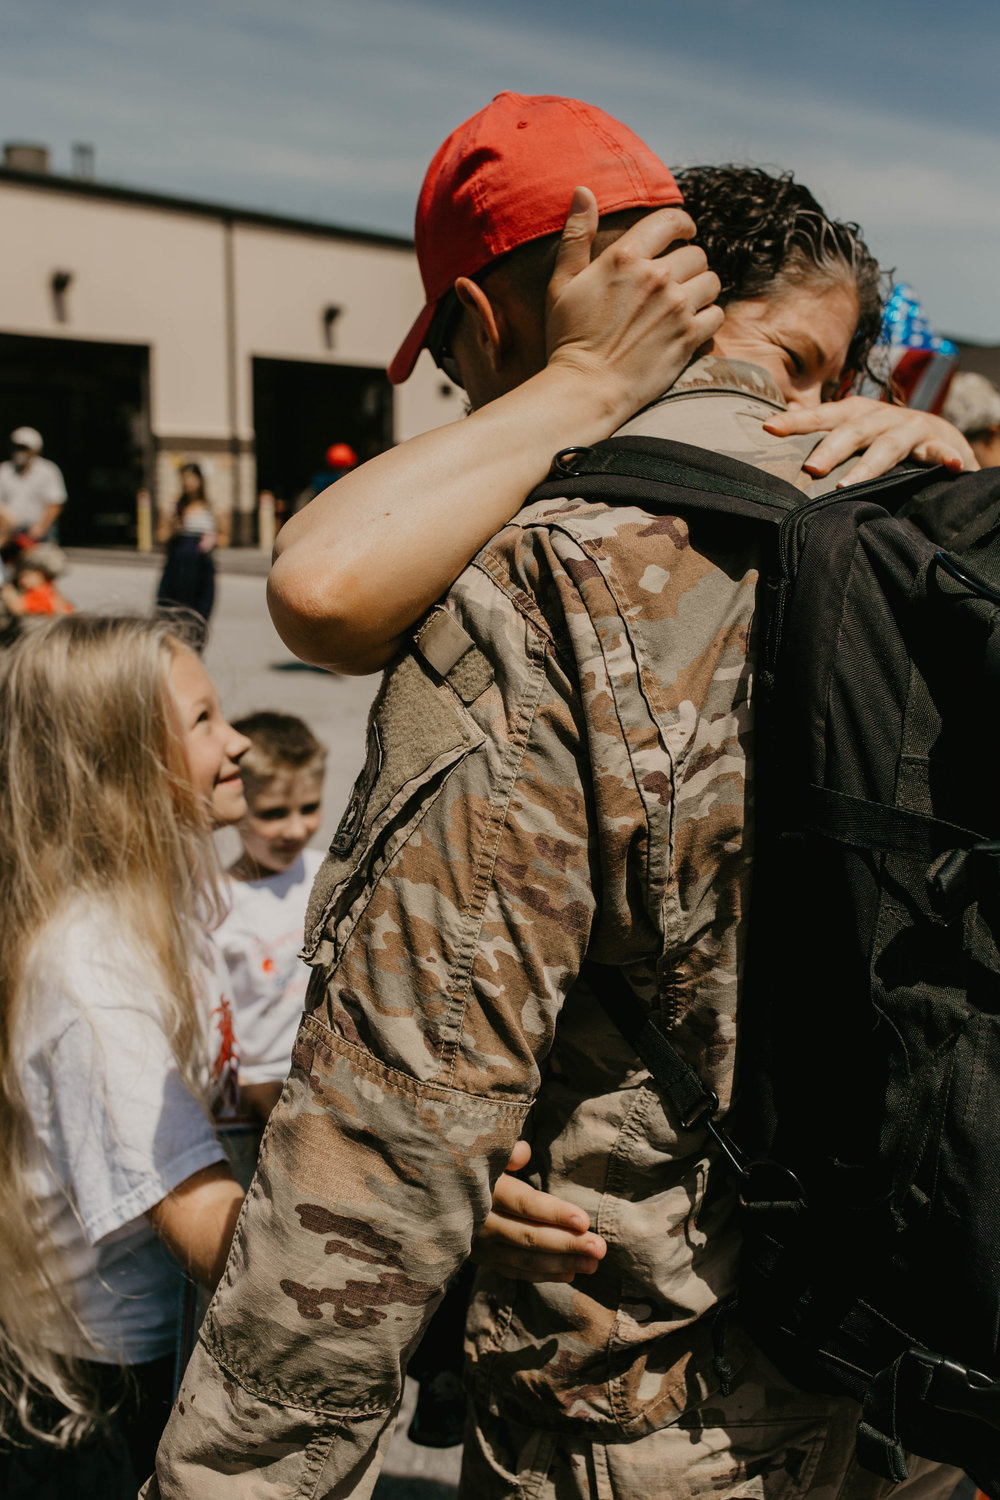 Family reunited after a 7 month deployment// Military homecoming photographer